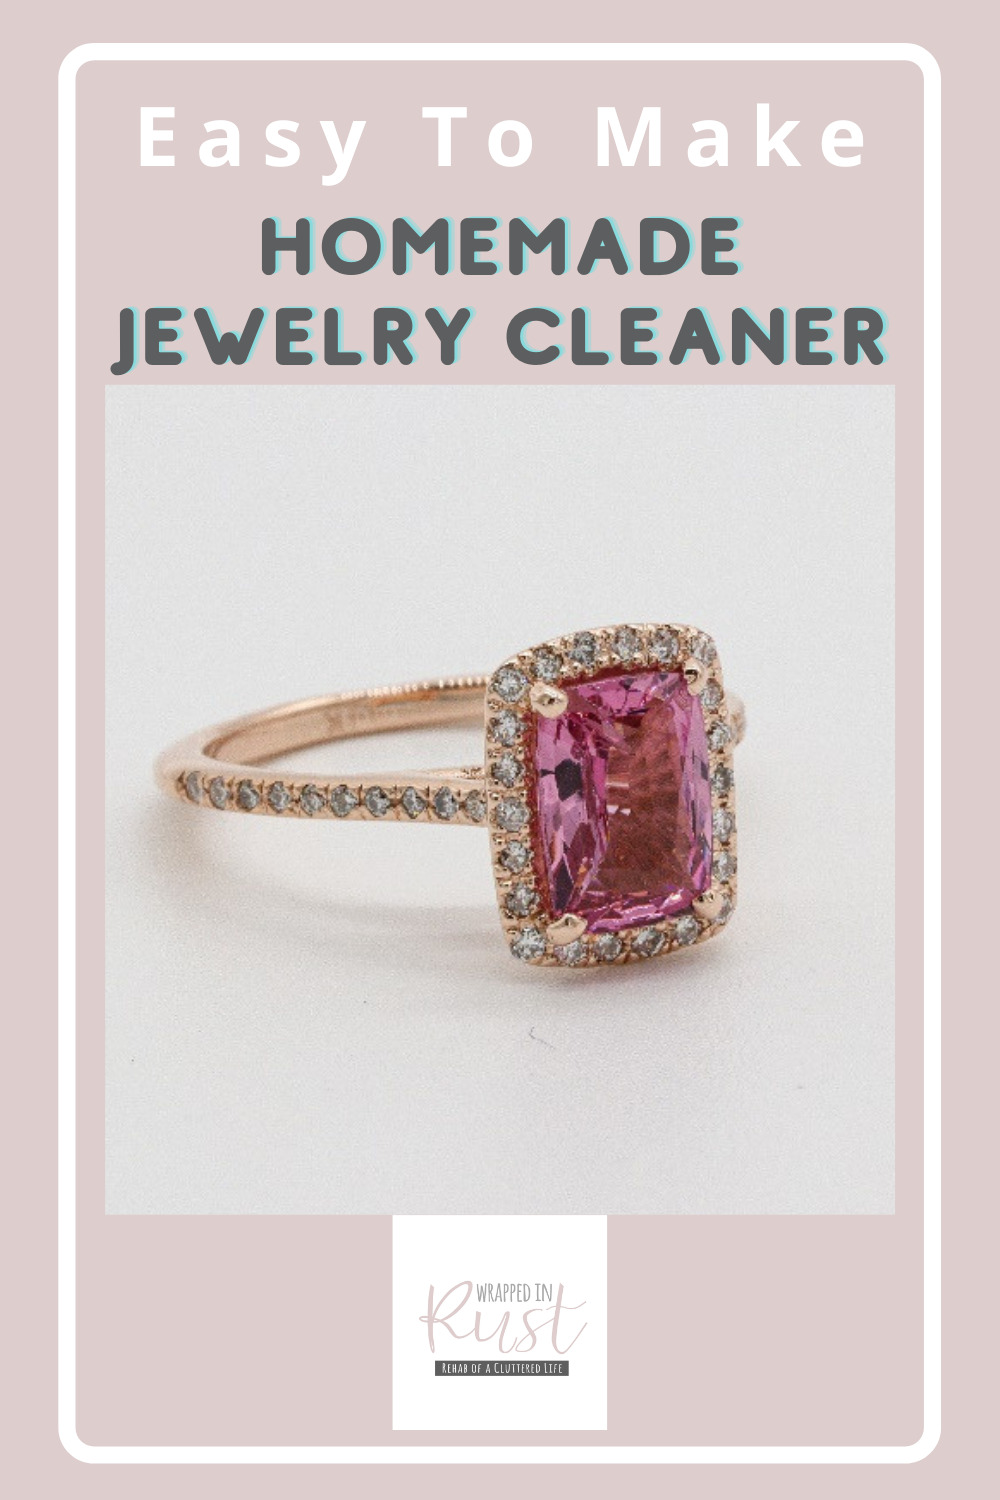 Wrappedinrust.com has creative solutions for tricky cleaning projects. Keep your jewelry spotless without overspending on store bought solution. Learn how to make jewelry cleaner all on your own!